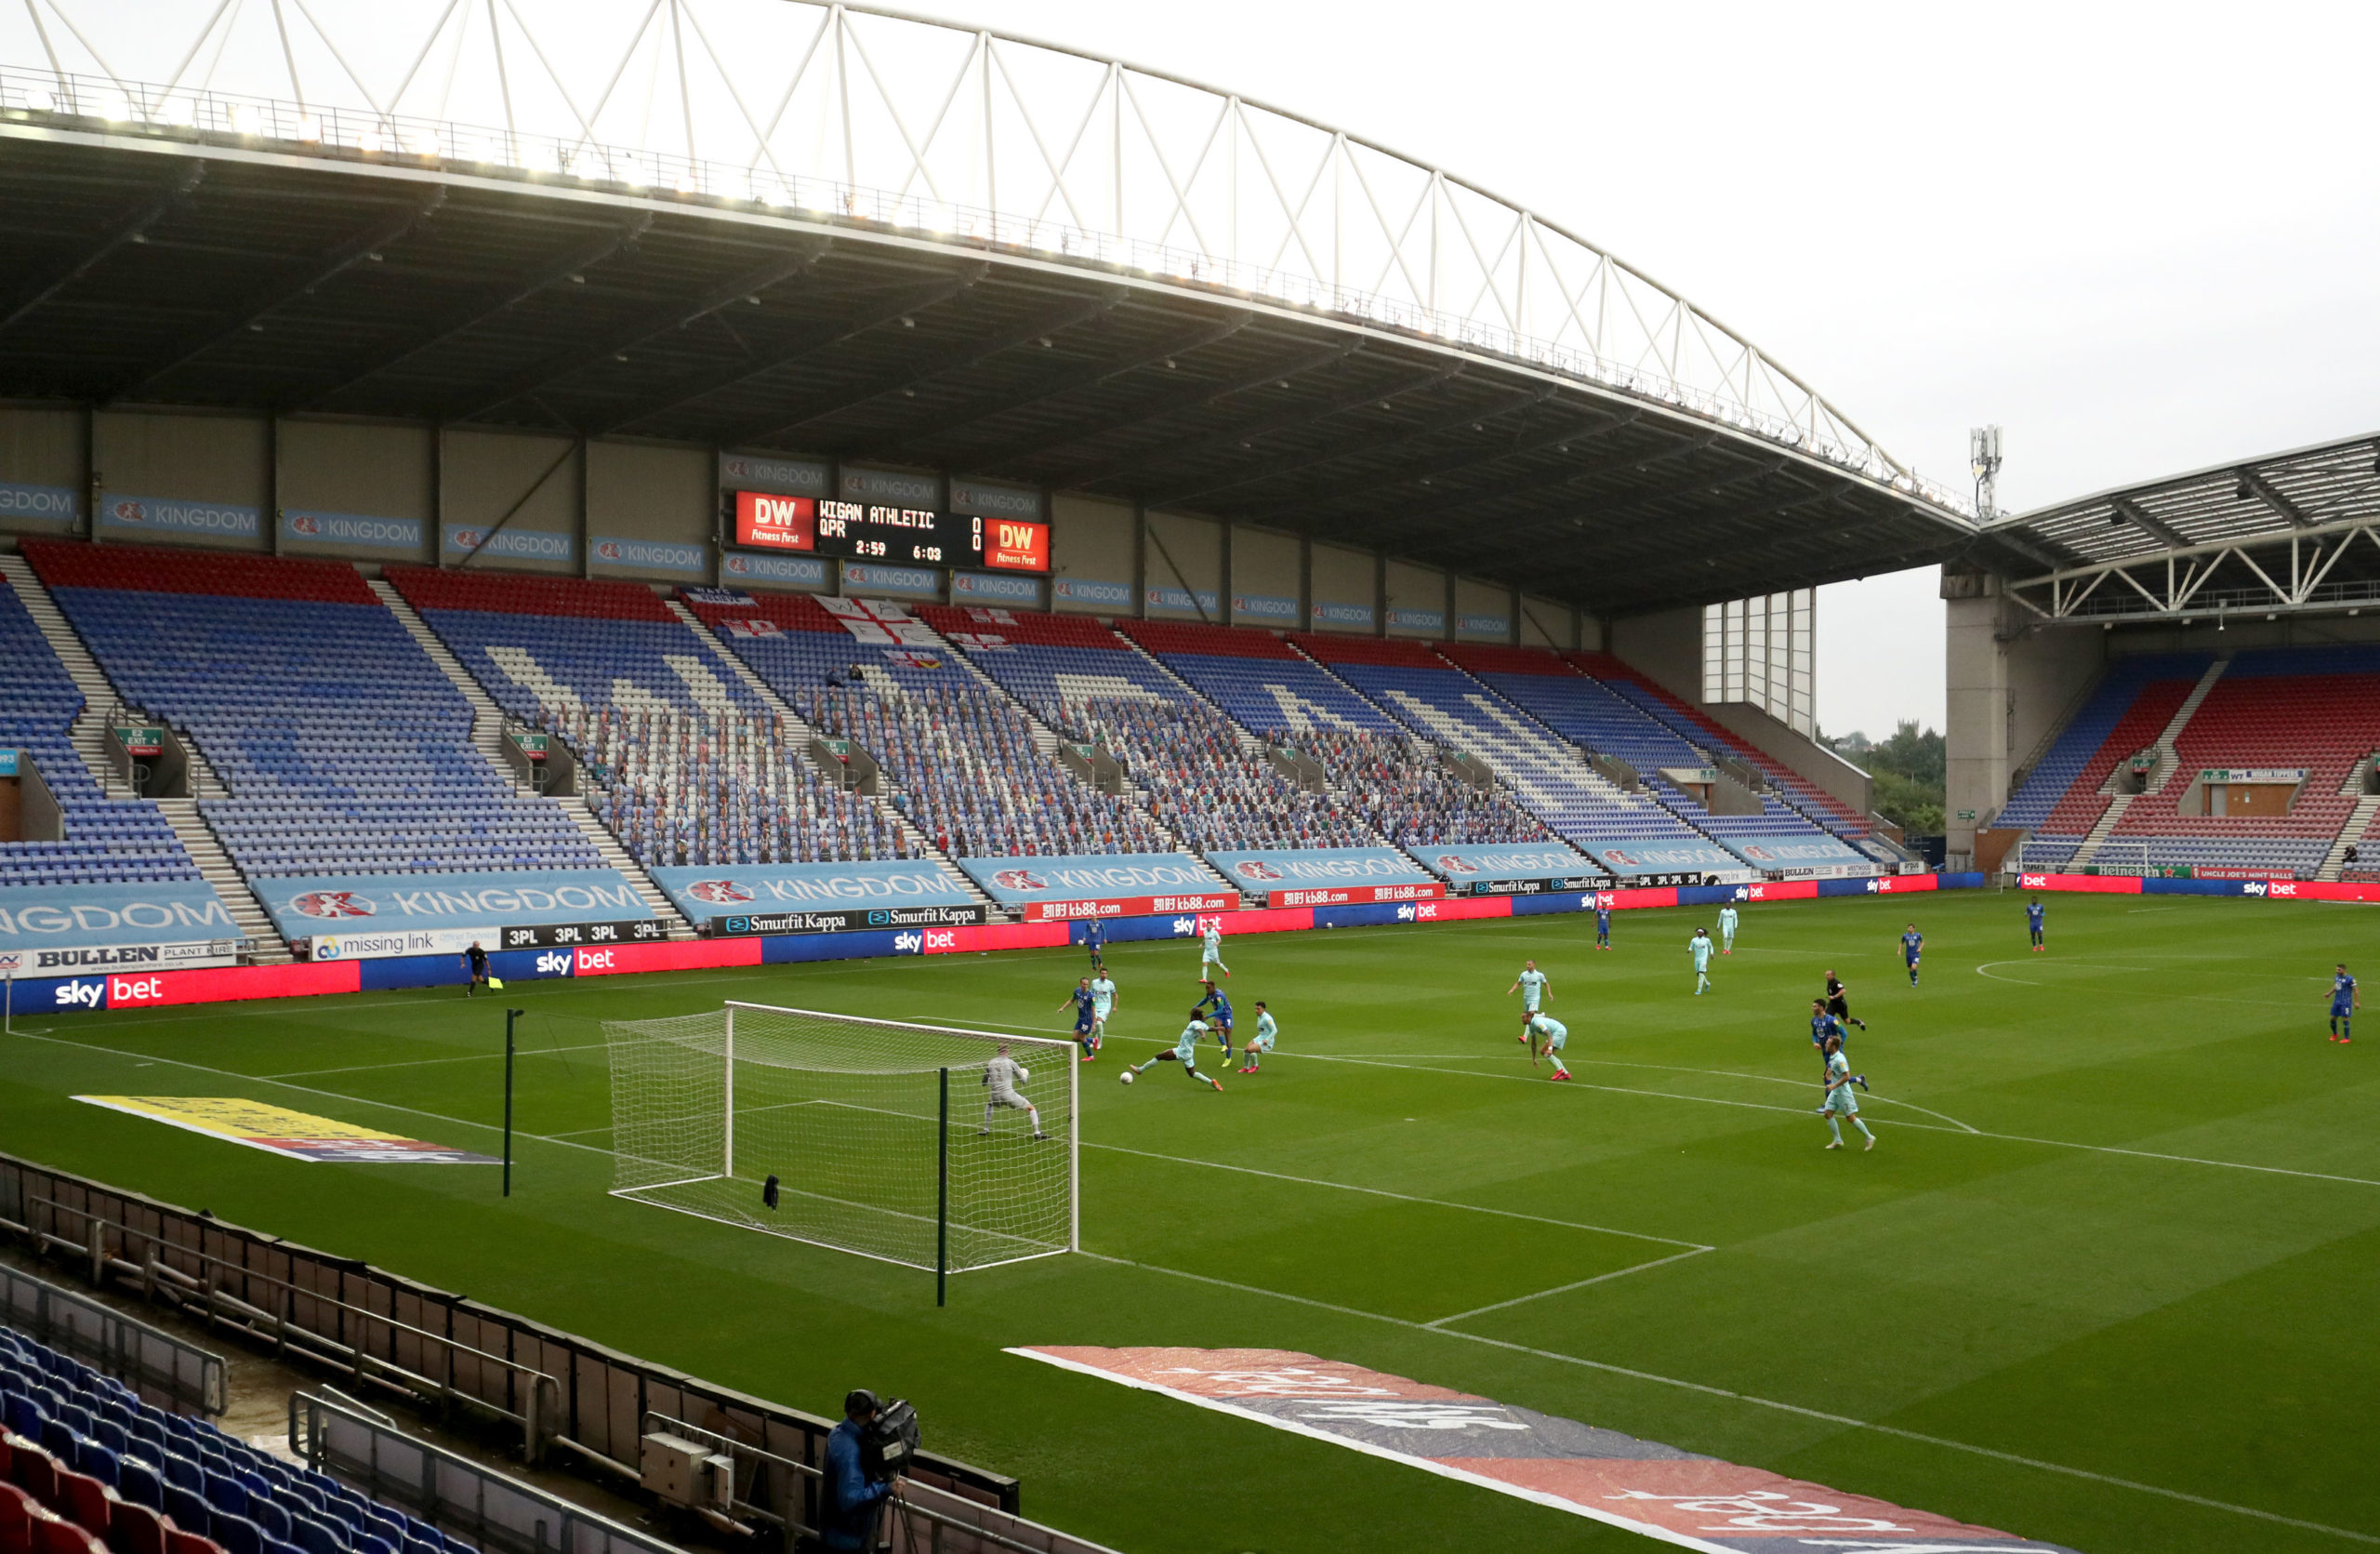 Wigan Athletic were put into administration a fortnight ago